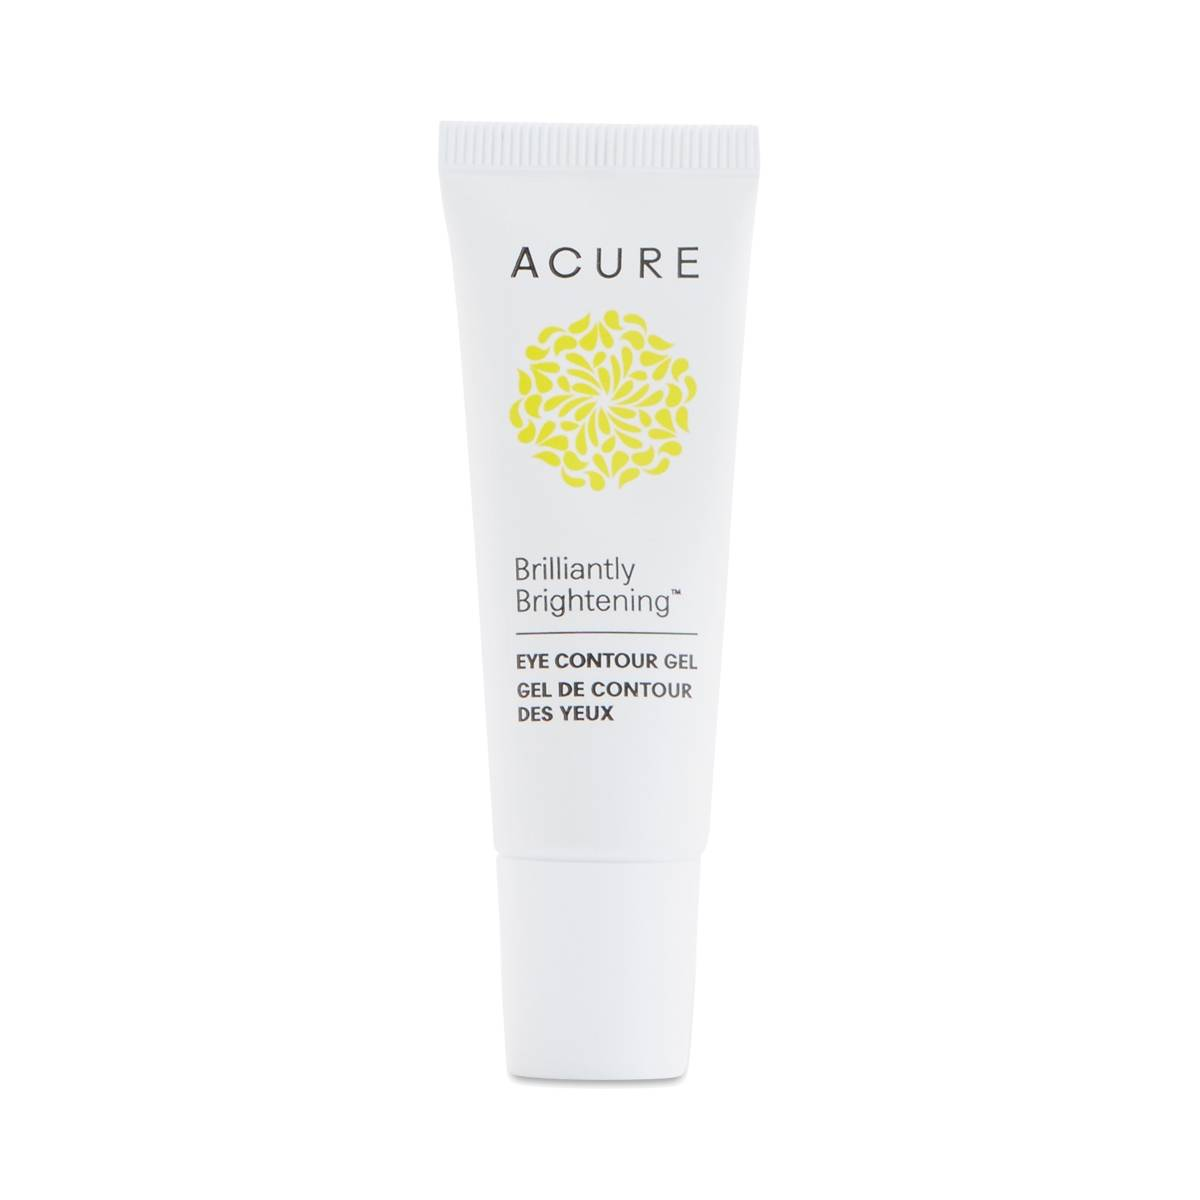 Eye Contour Gel By Acure Organics